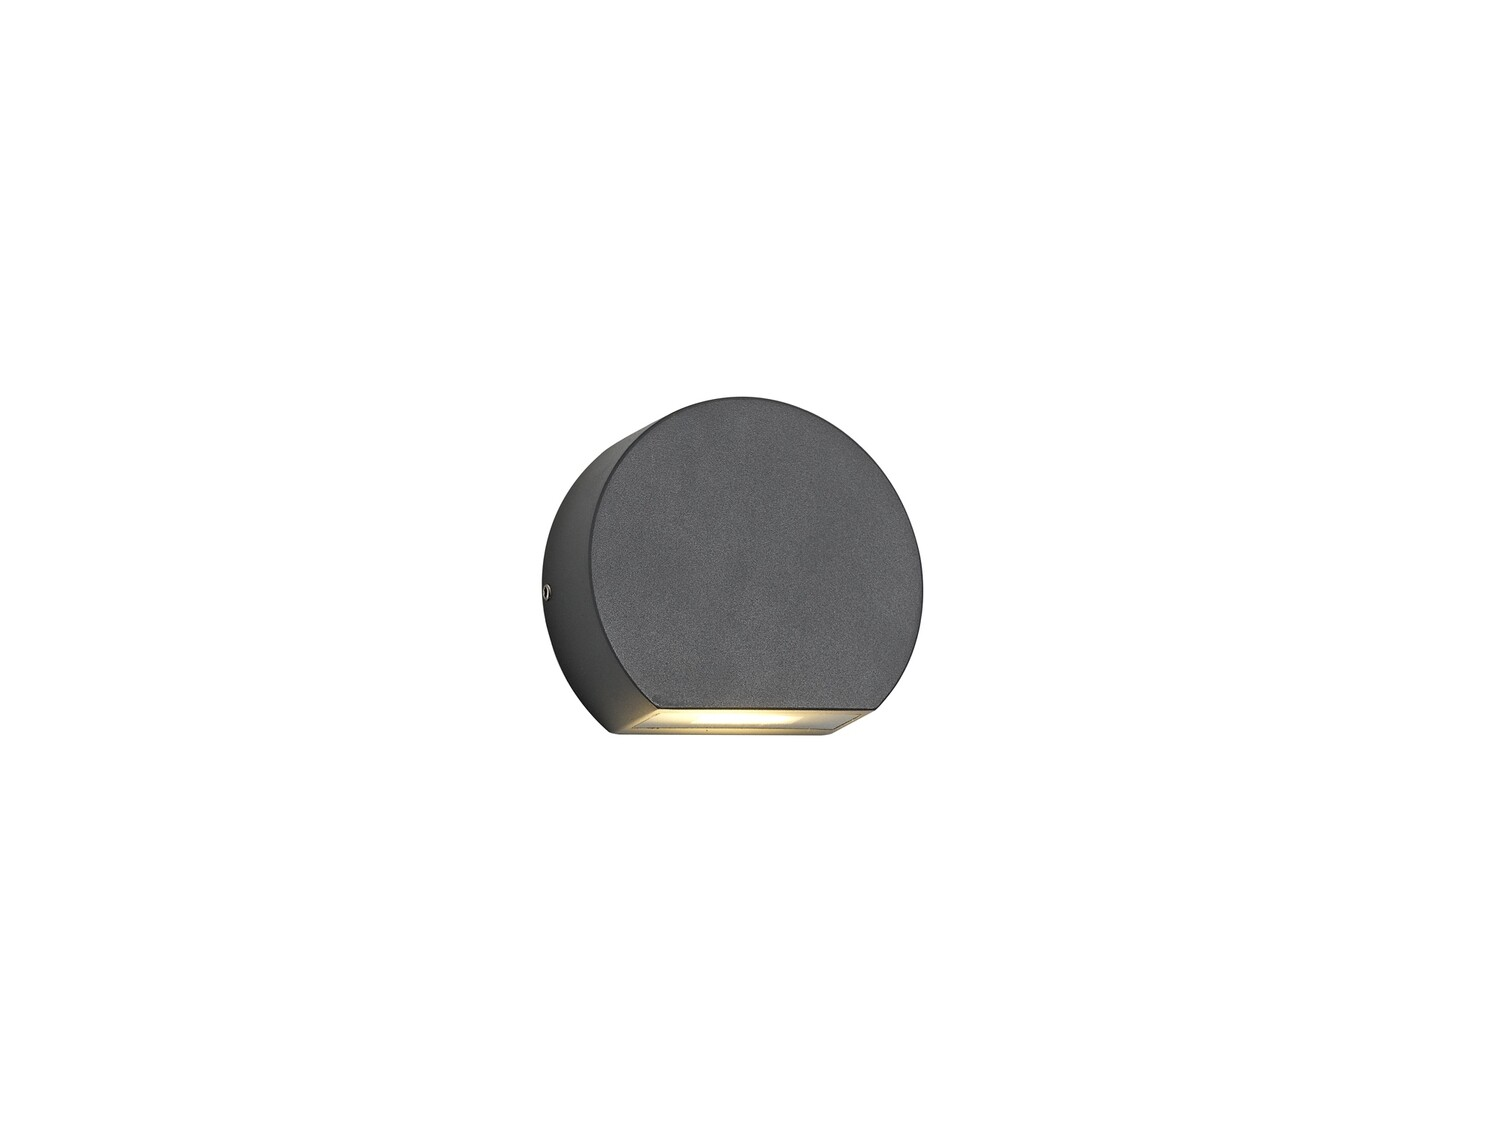 Lucina Wall Light 3W LED 3000K, Anthracite, 270lm, IP54